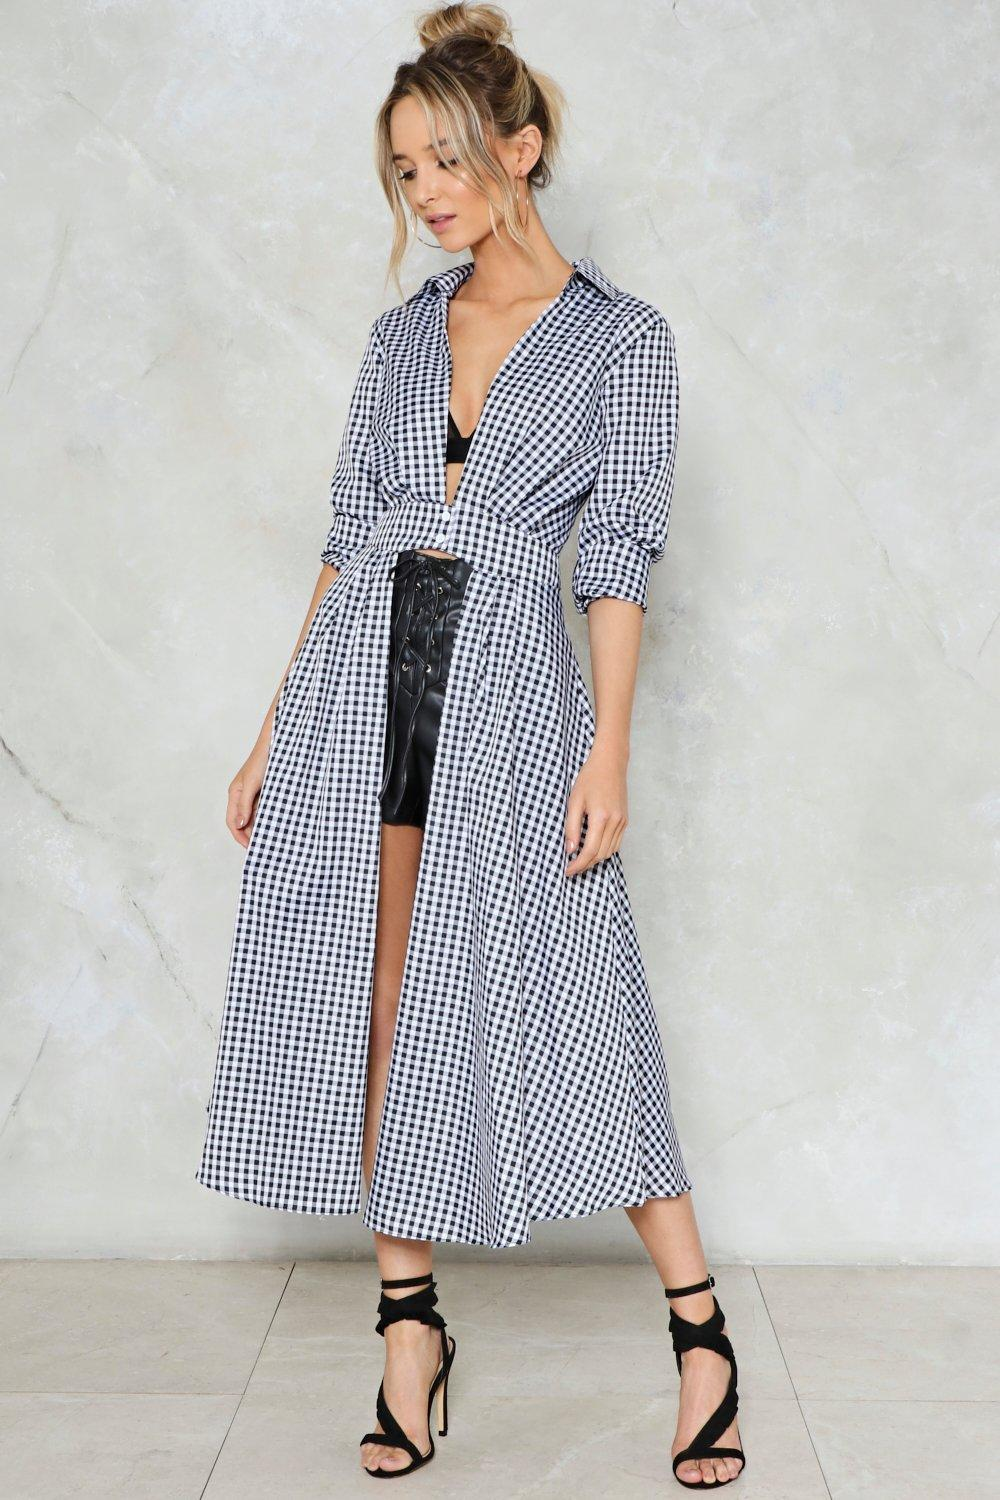 f4ec549882 Check Yourself Gingham Shirt | Shop Clothes at Nasty Gal!